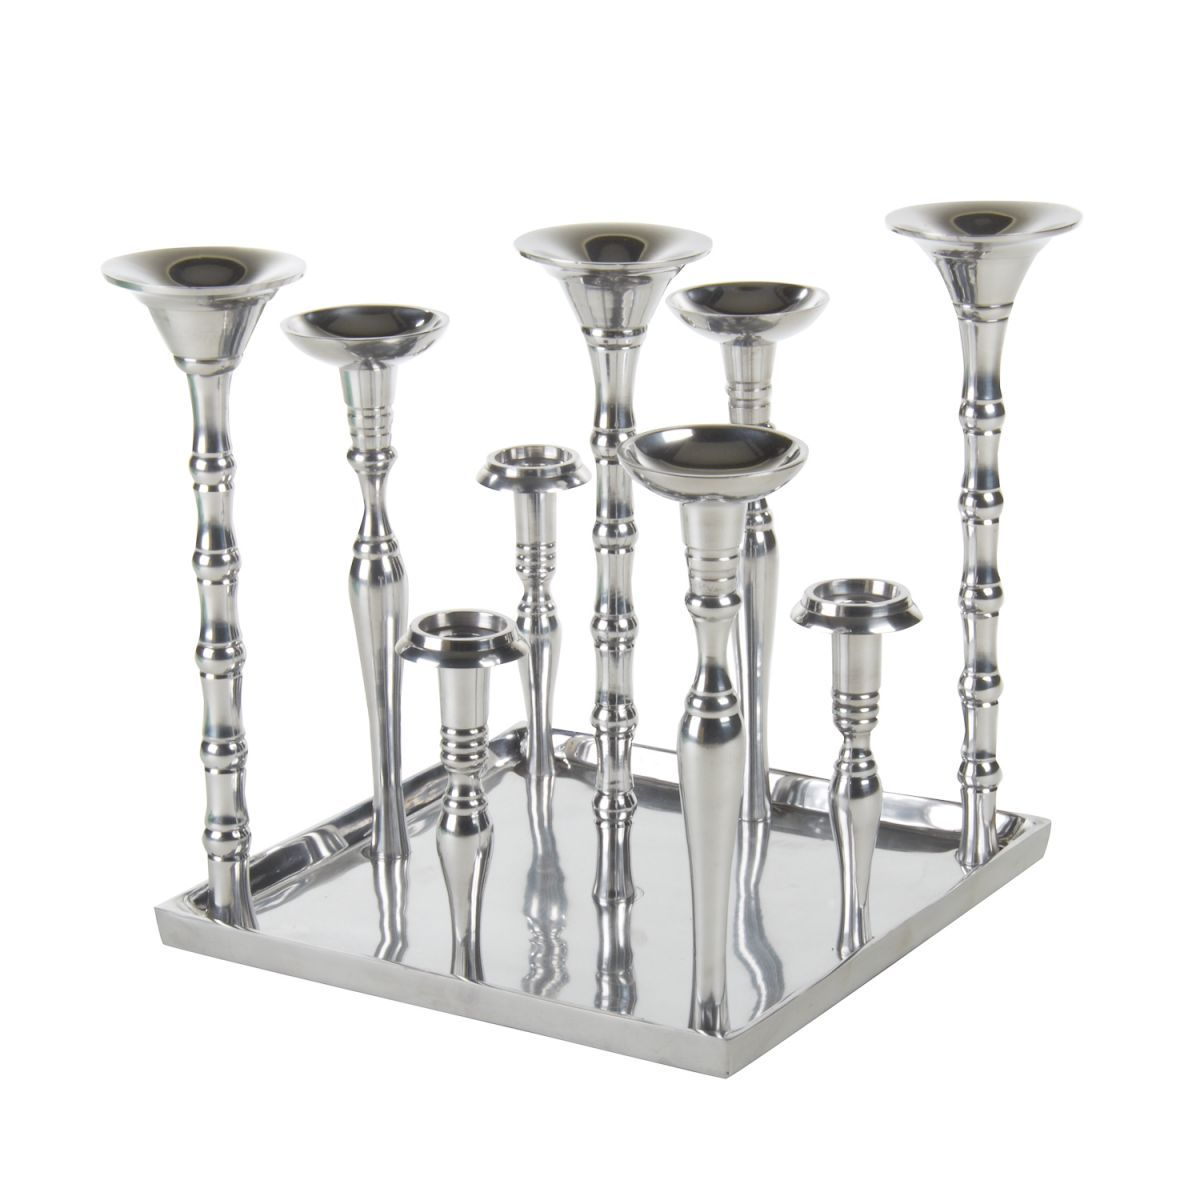 candleholders 9 on square tray 33cm